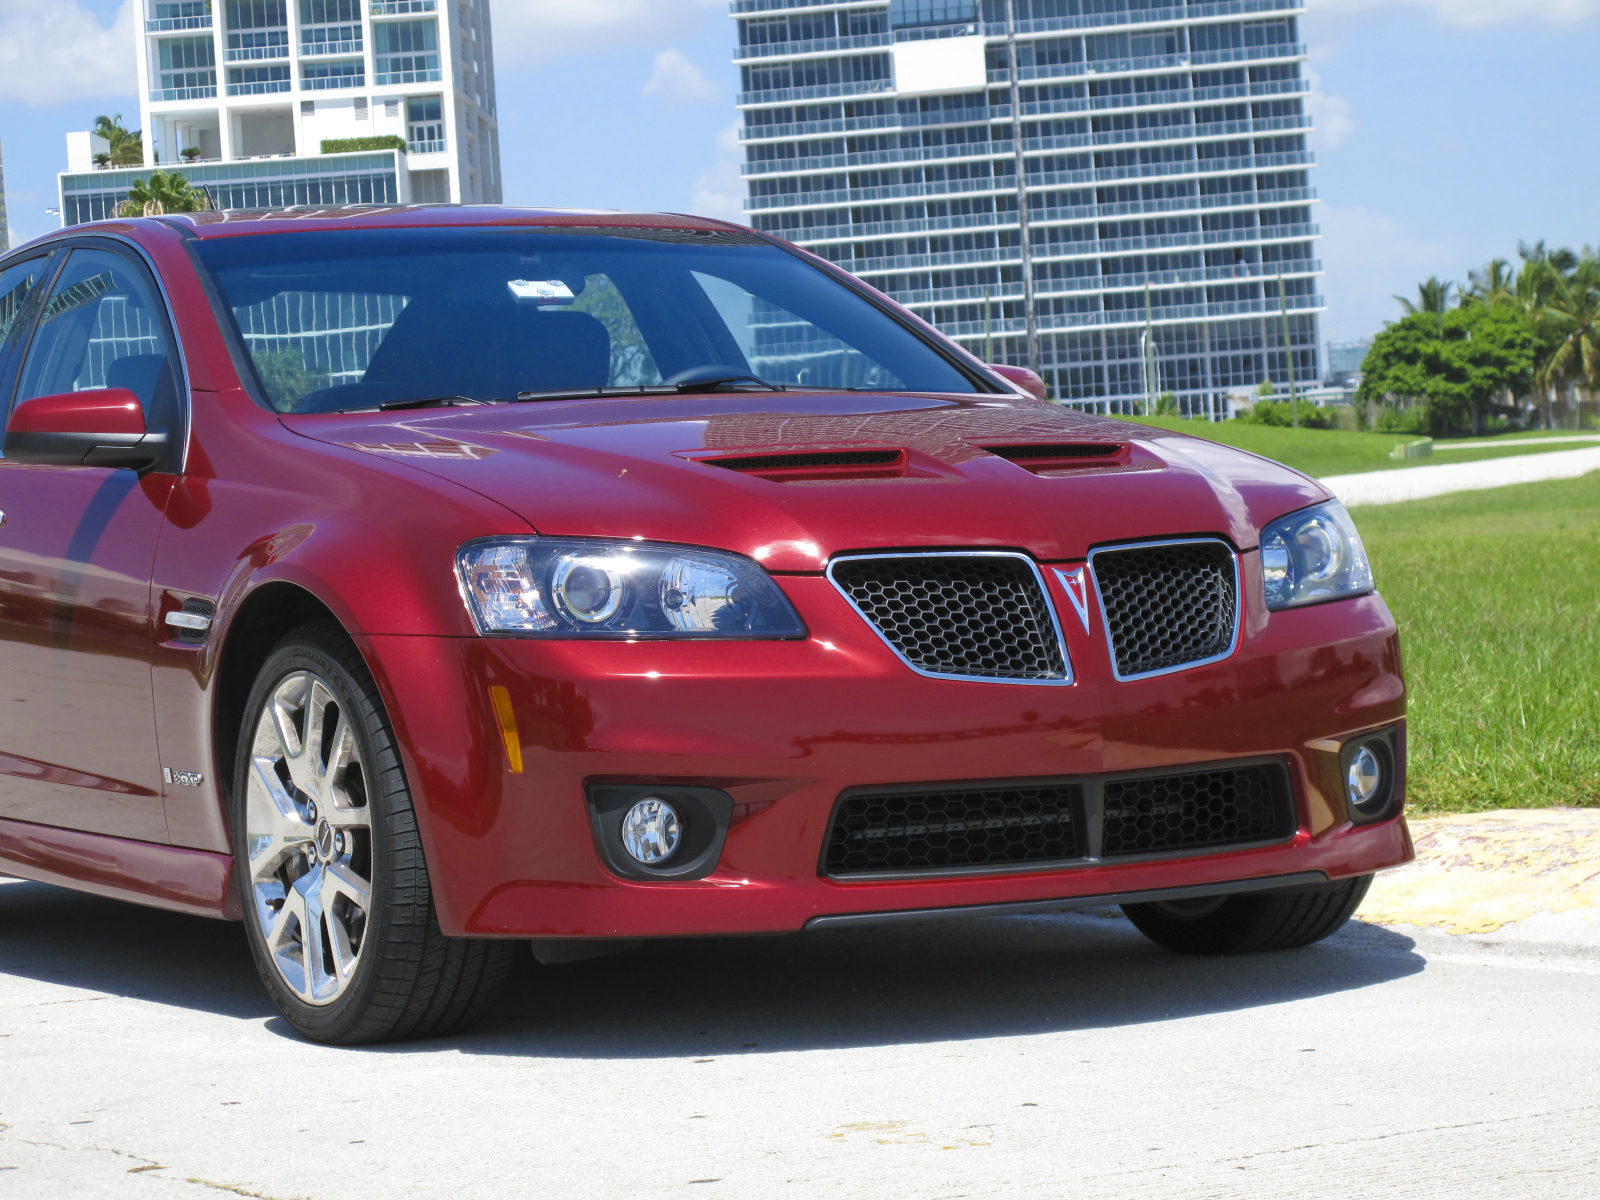 2010 Pontiac G8 GXP | Top Speed. »